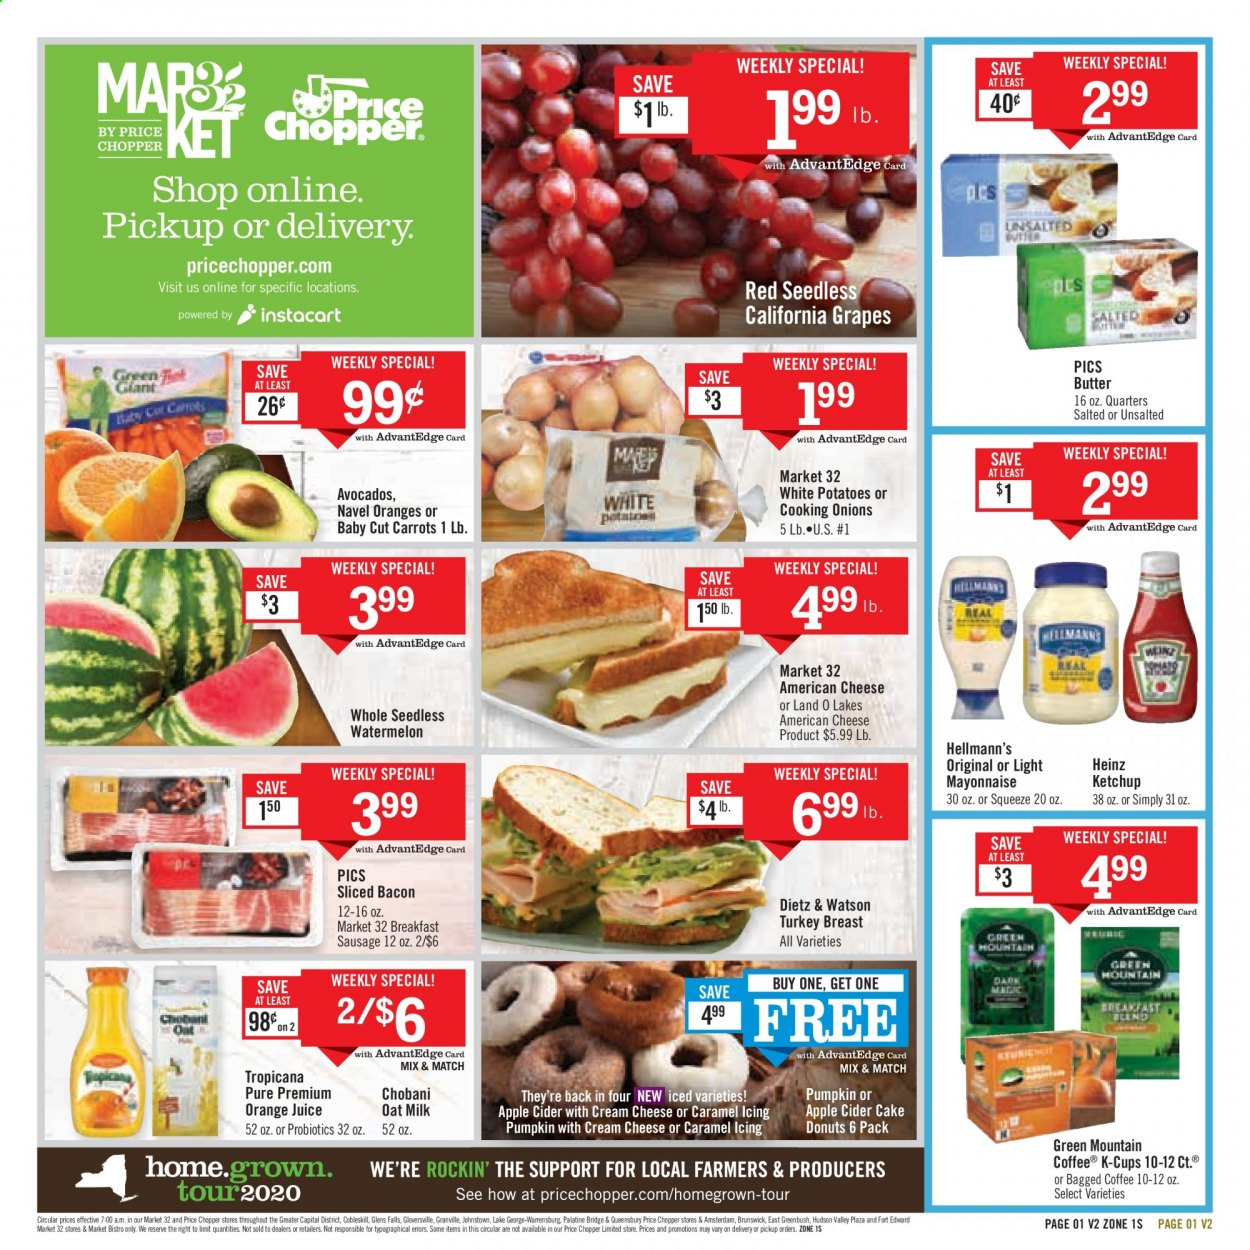 Price Chopper Flyer - 08.30.2020 - 09.05.2020 - Sales products - american cheese, apple cider, avocado, bacon, butter, caramel, carrots, coffee, cream cheese, grapes, mayonnaise, milk, navel oranges, sausage, turkey, turkey breast, watermelon, heinz, ketchup, potatoes, probiotics, pumpkin, onion, orange juice, orange, cheese, juice, cake, donuts, donut, oranges, onions. Page 1.